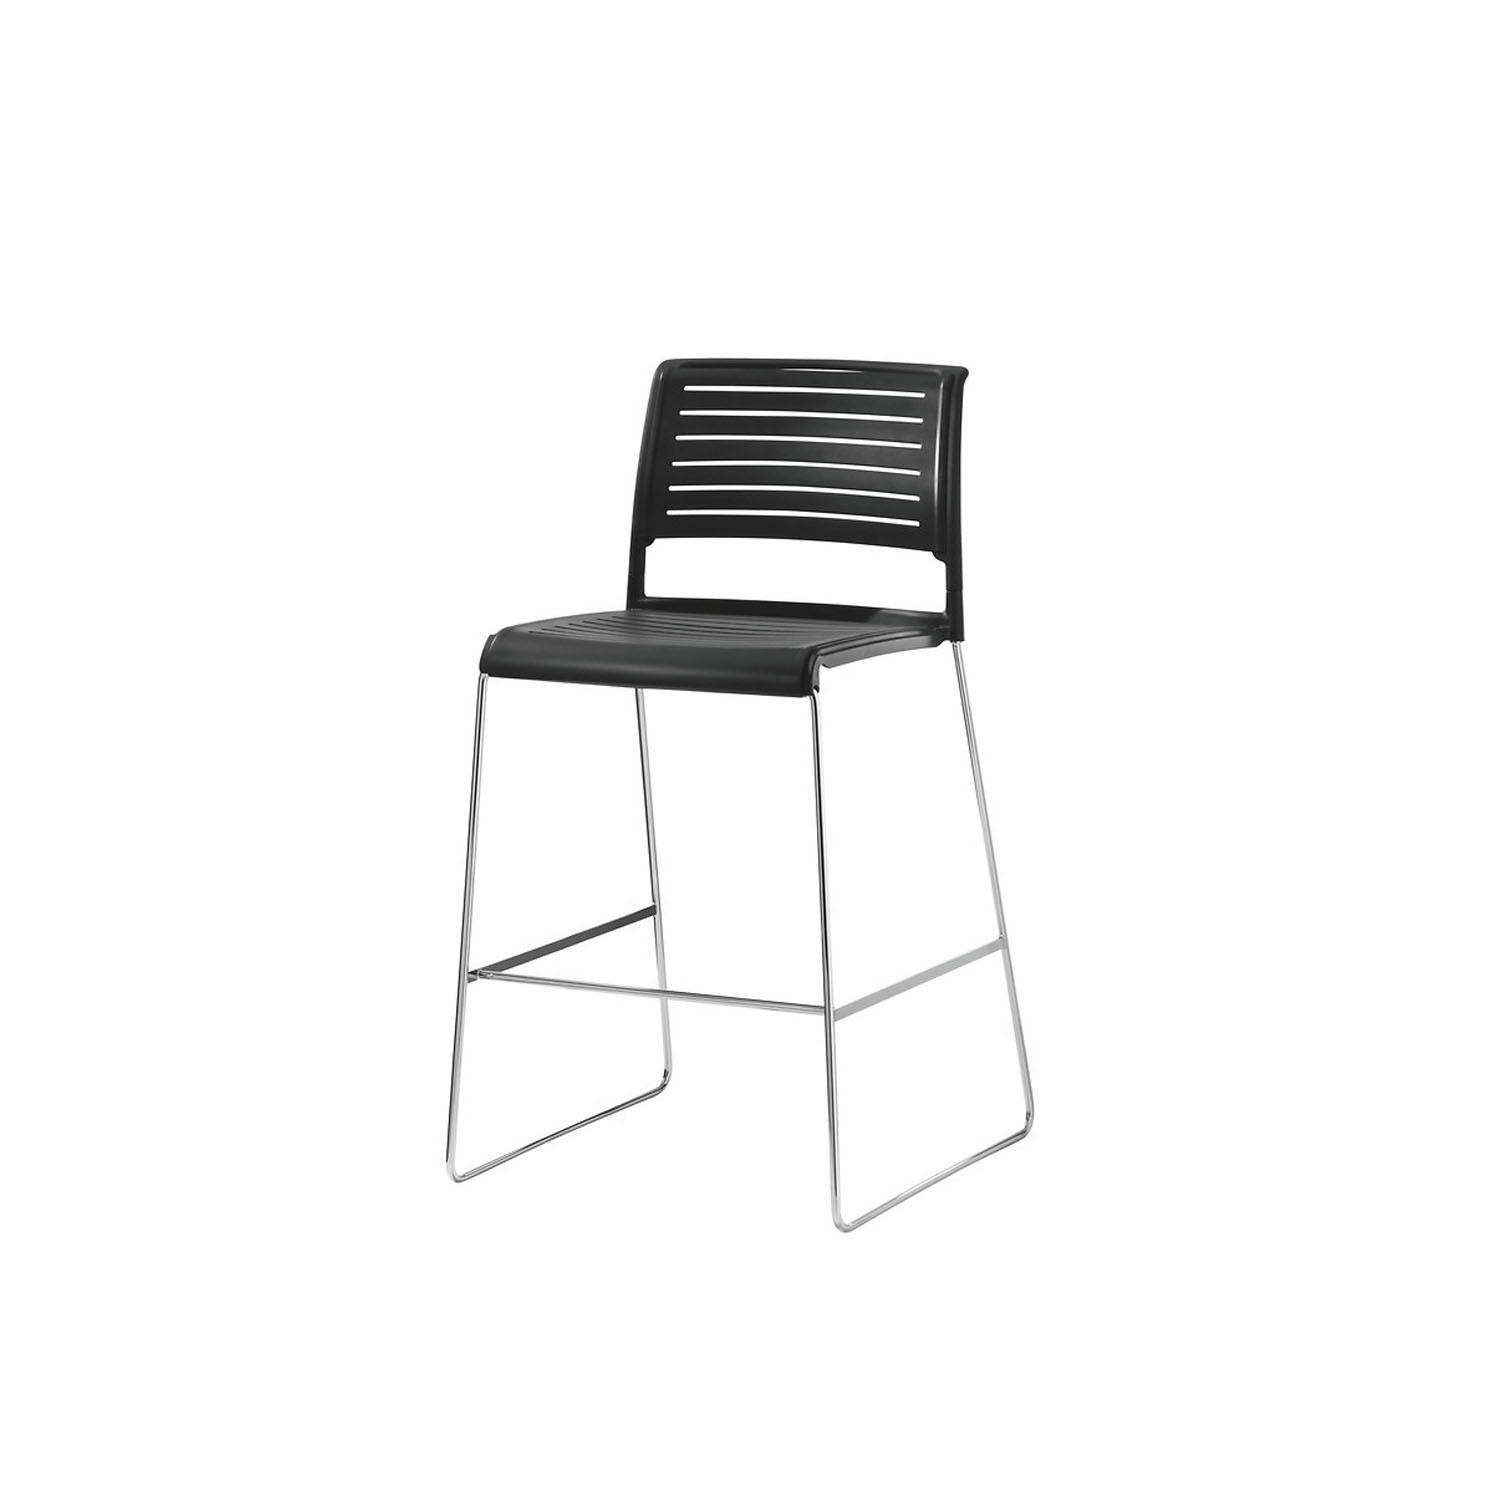 Aline-S High Stool